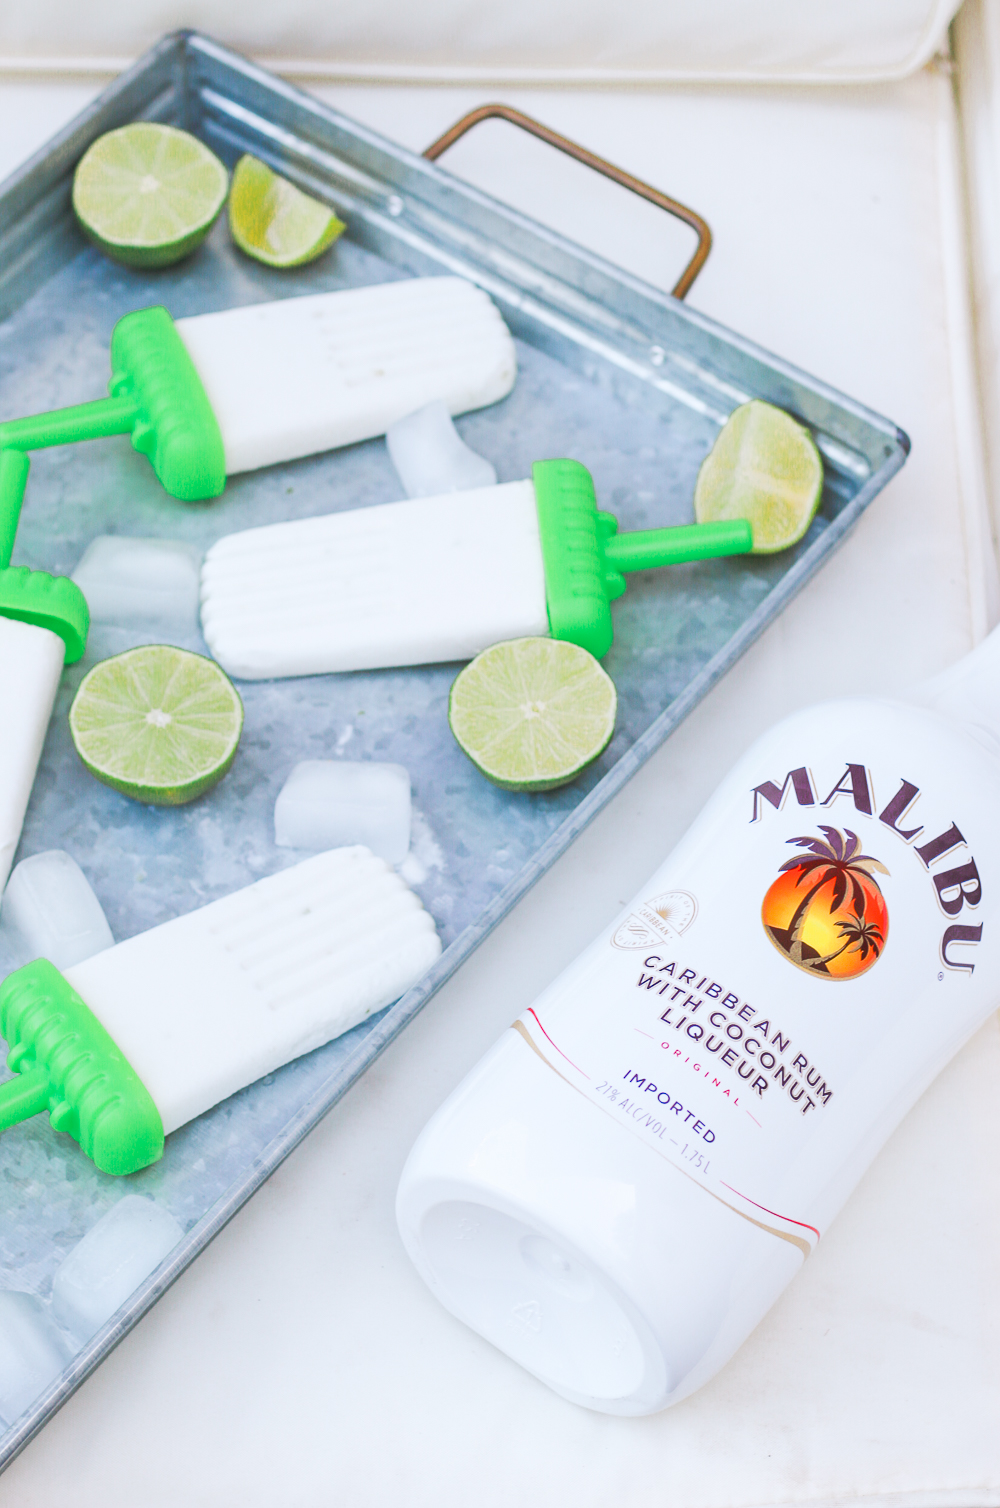 Malibu rum popsicles recipe by blogger Stephanie Ziajka on Diary of a Debutante